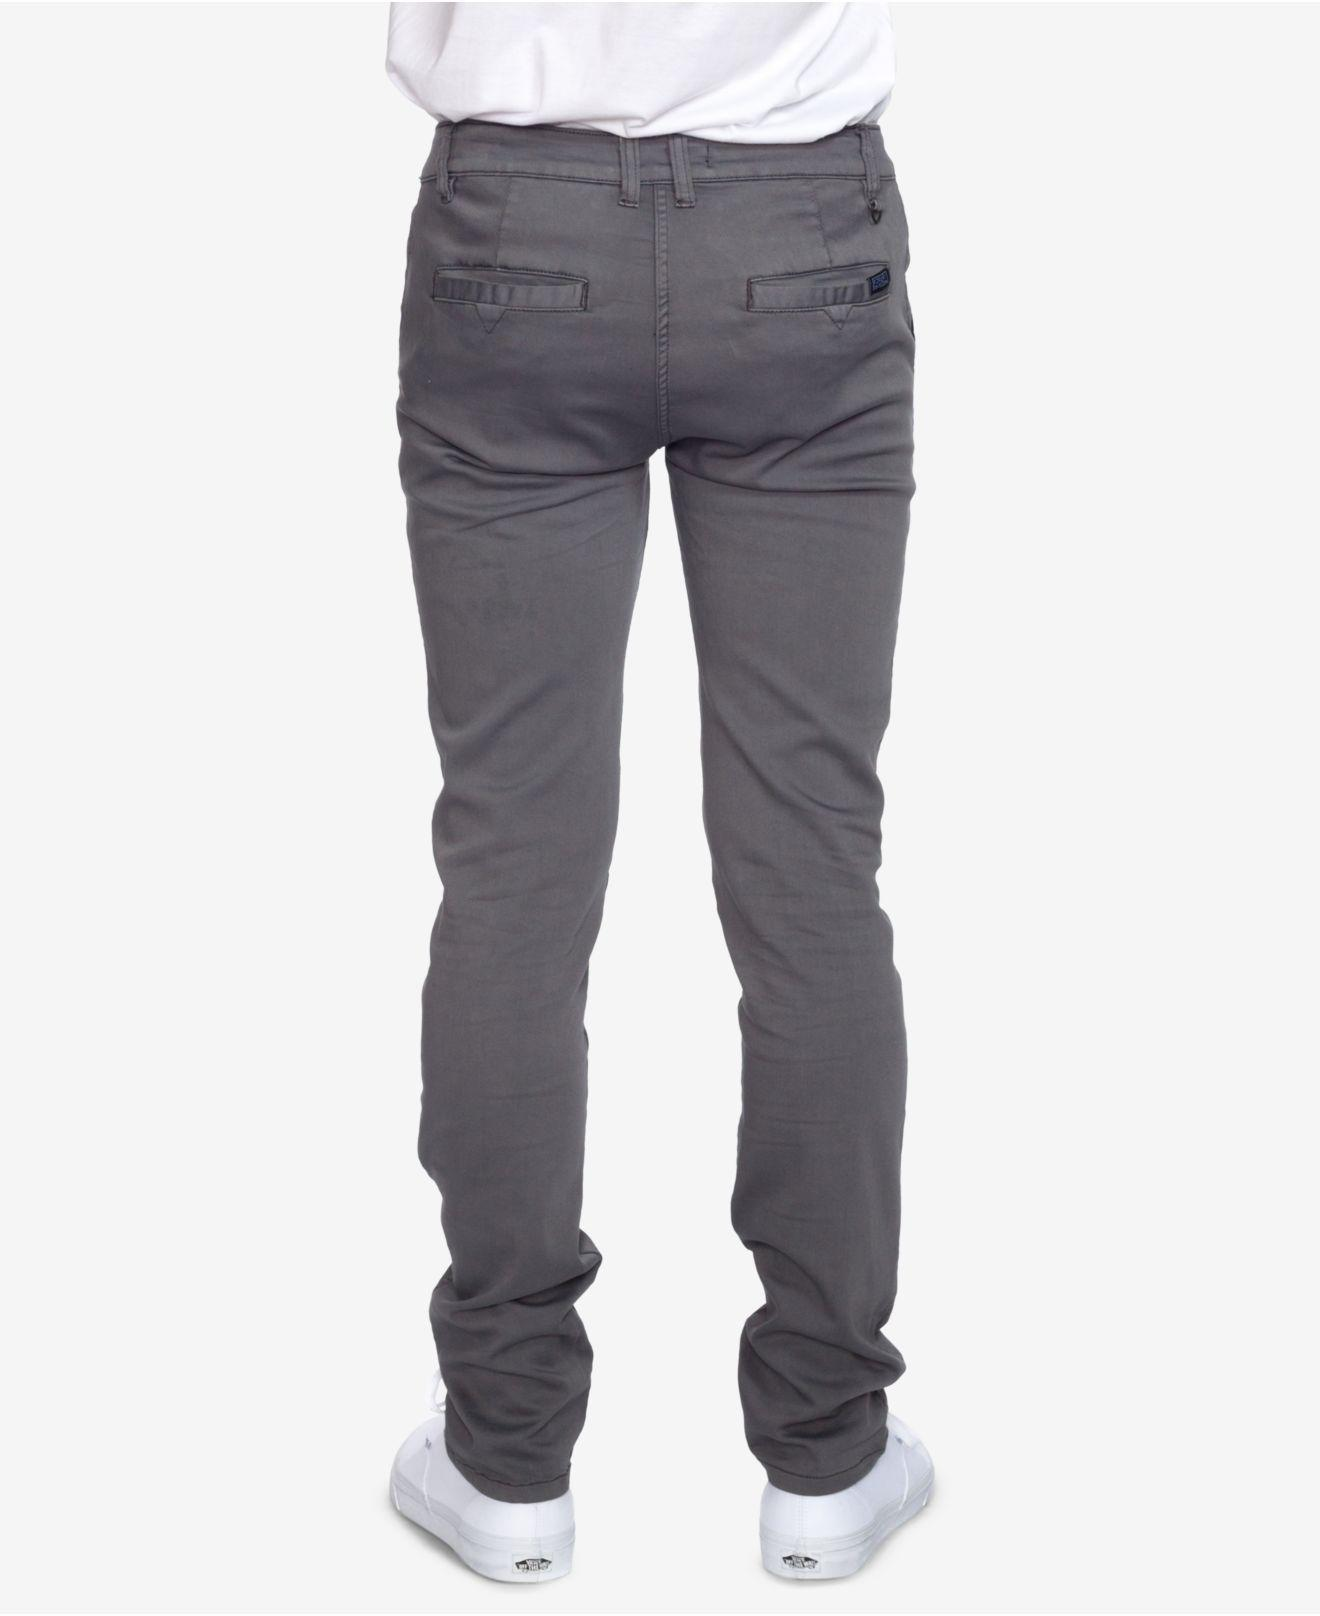 b2b9398a Ezekiel Mens Slim-fit Stretch Jeans in Gray for Men - Lyst